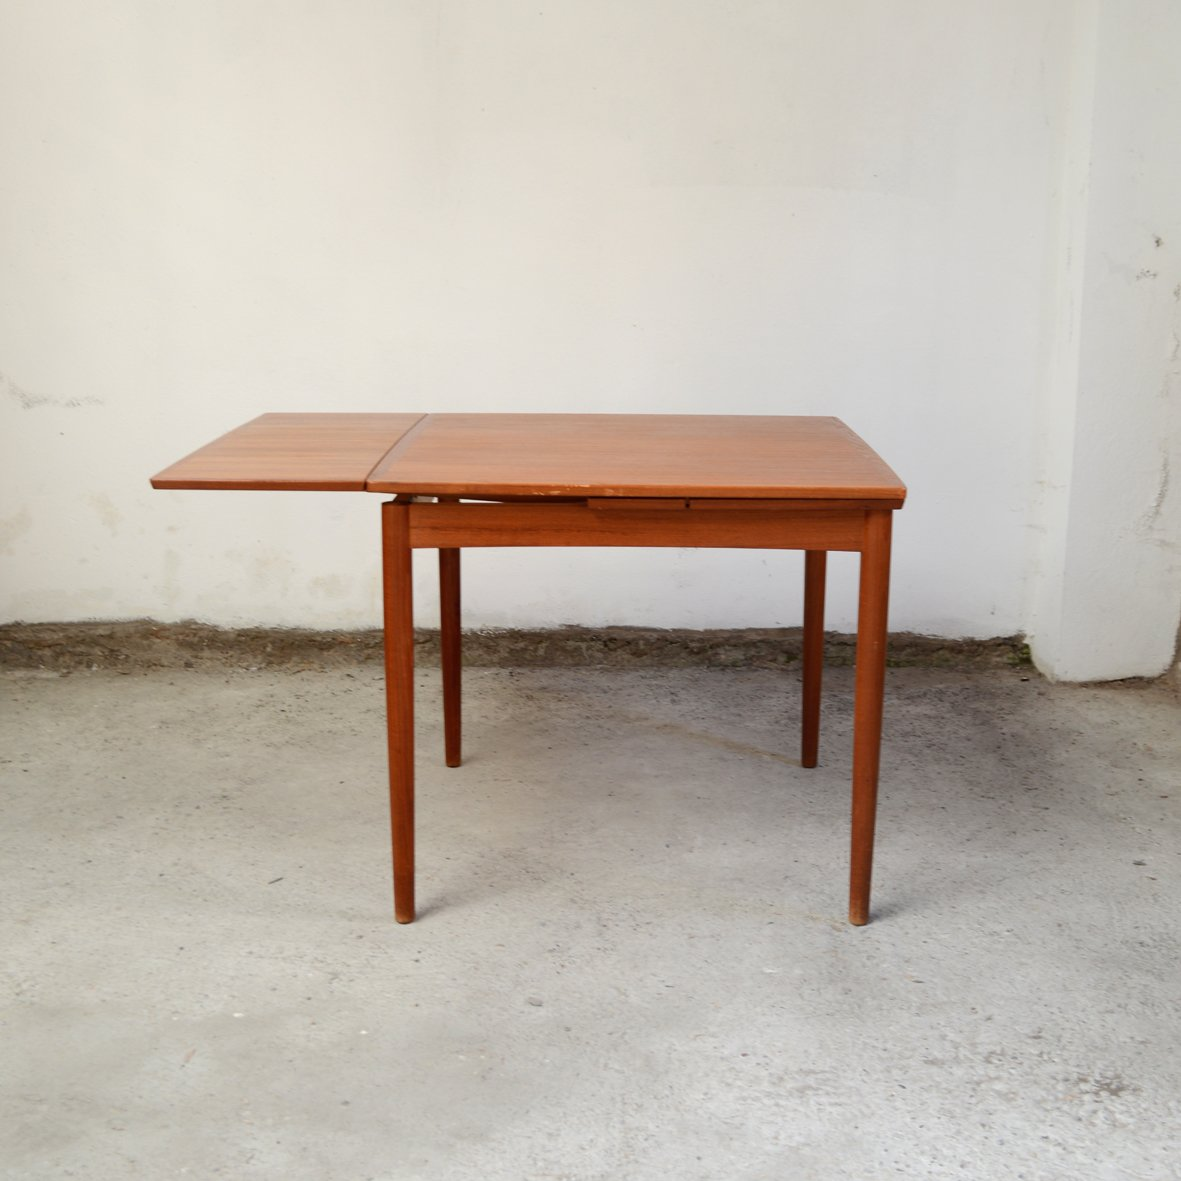 Table de salle manger mid century carr e en teck par for Table de salle a manger carree